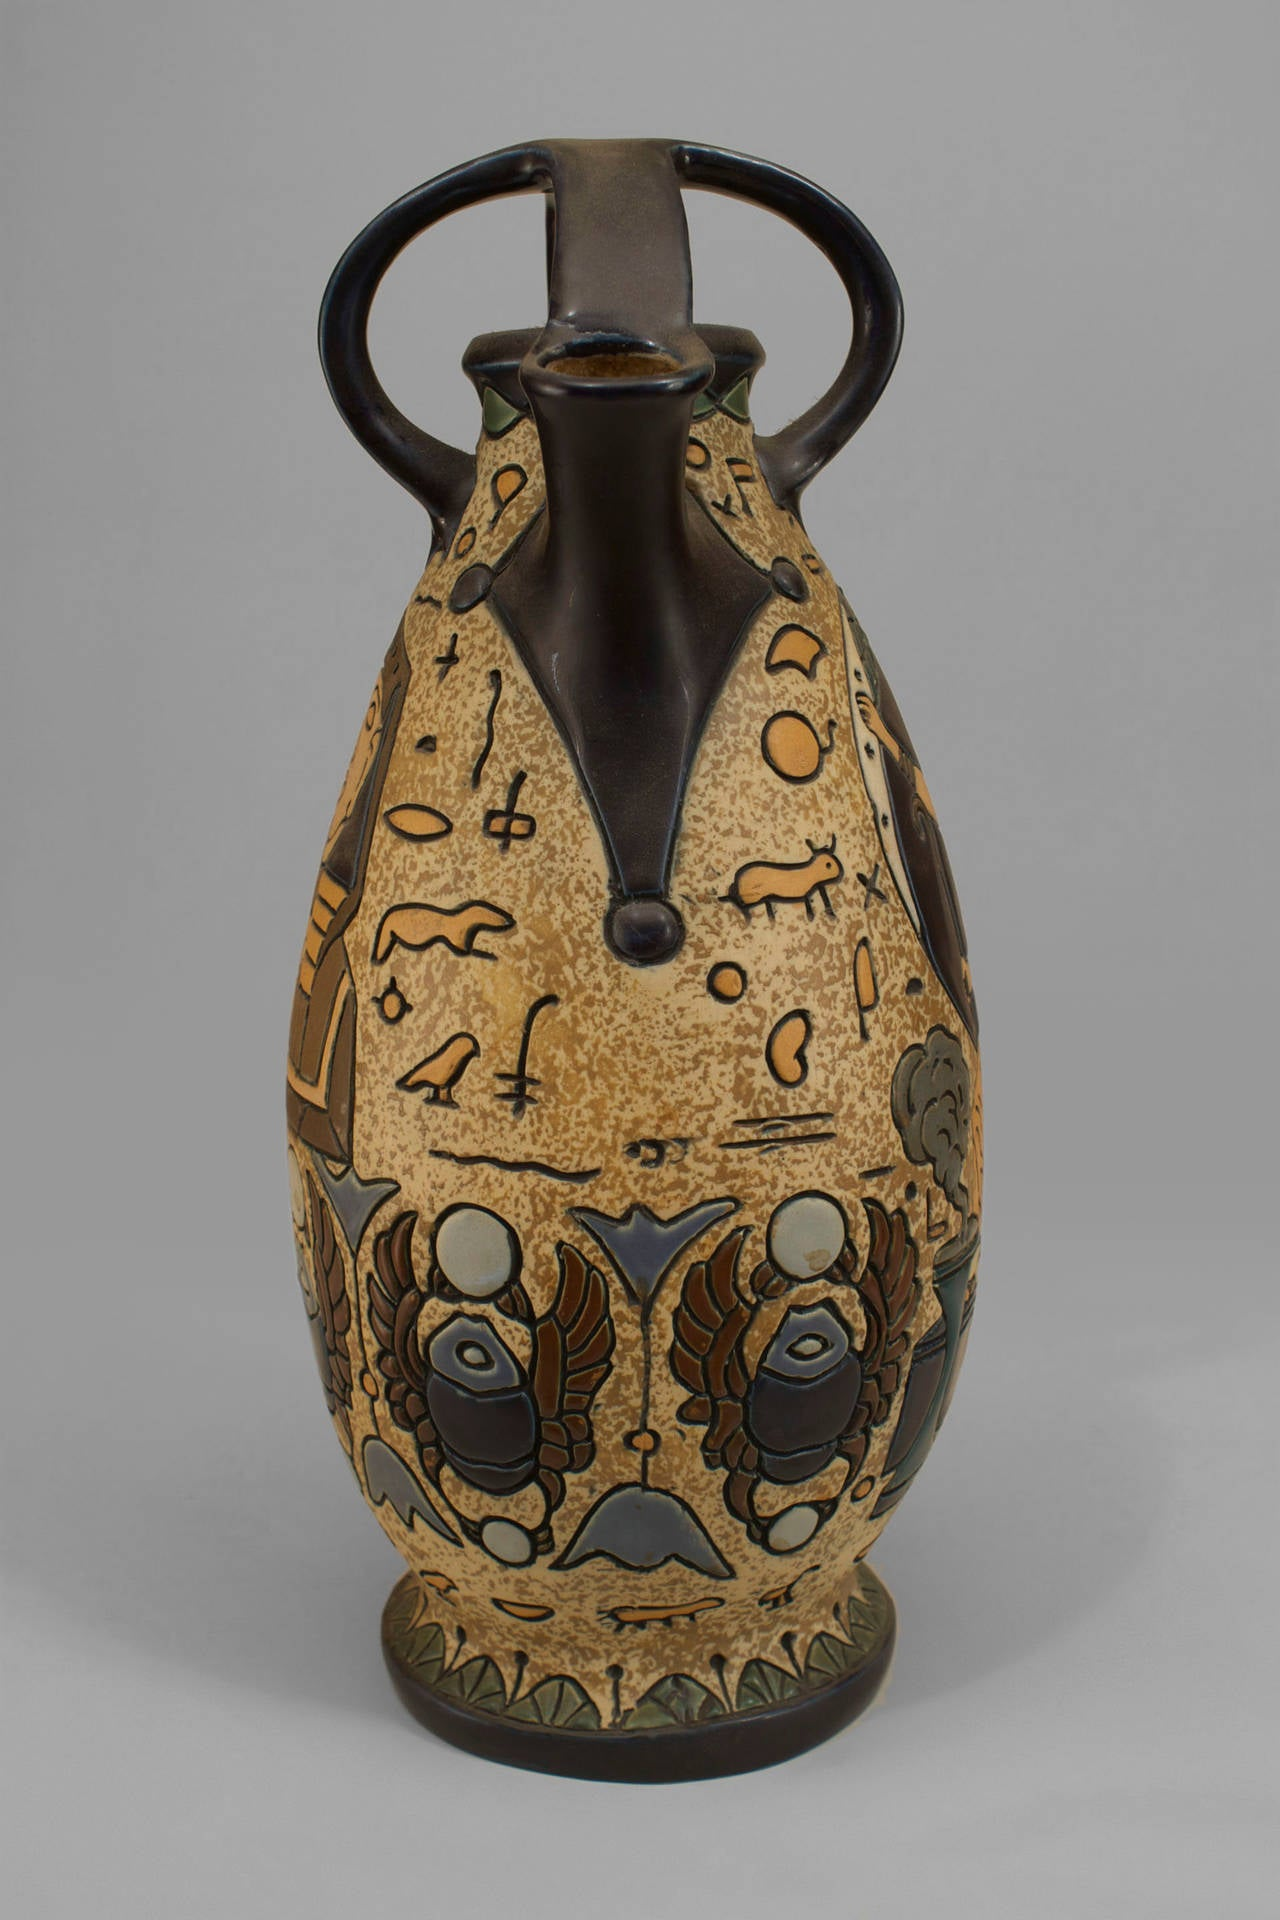 Early 20th century amphora of probable Czechoslovakian origin. The vase is decorated with Egyptian Revival figures and motifs and is trimmed in black with a spout and open cage top.